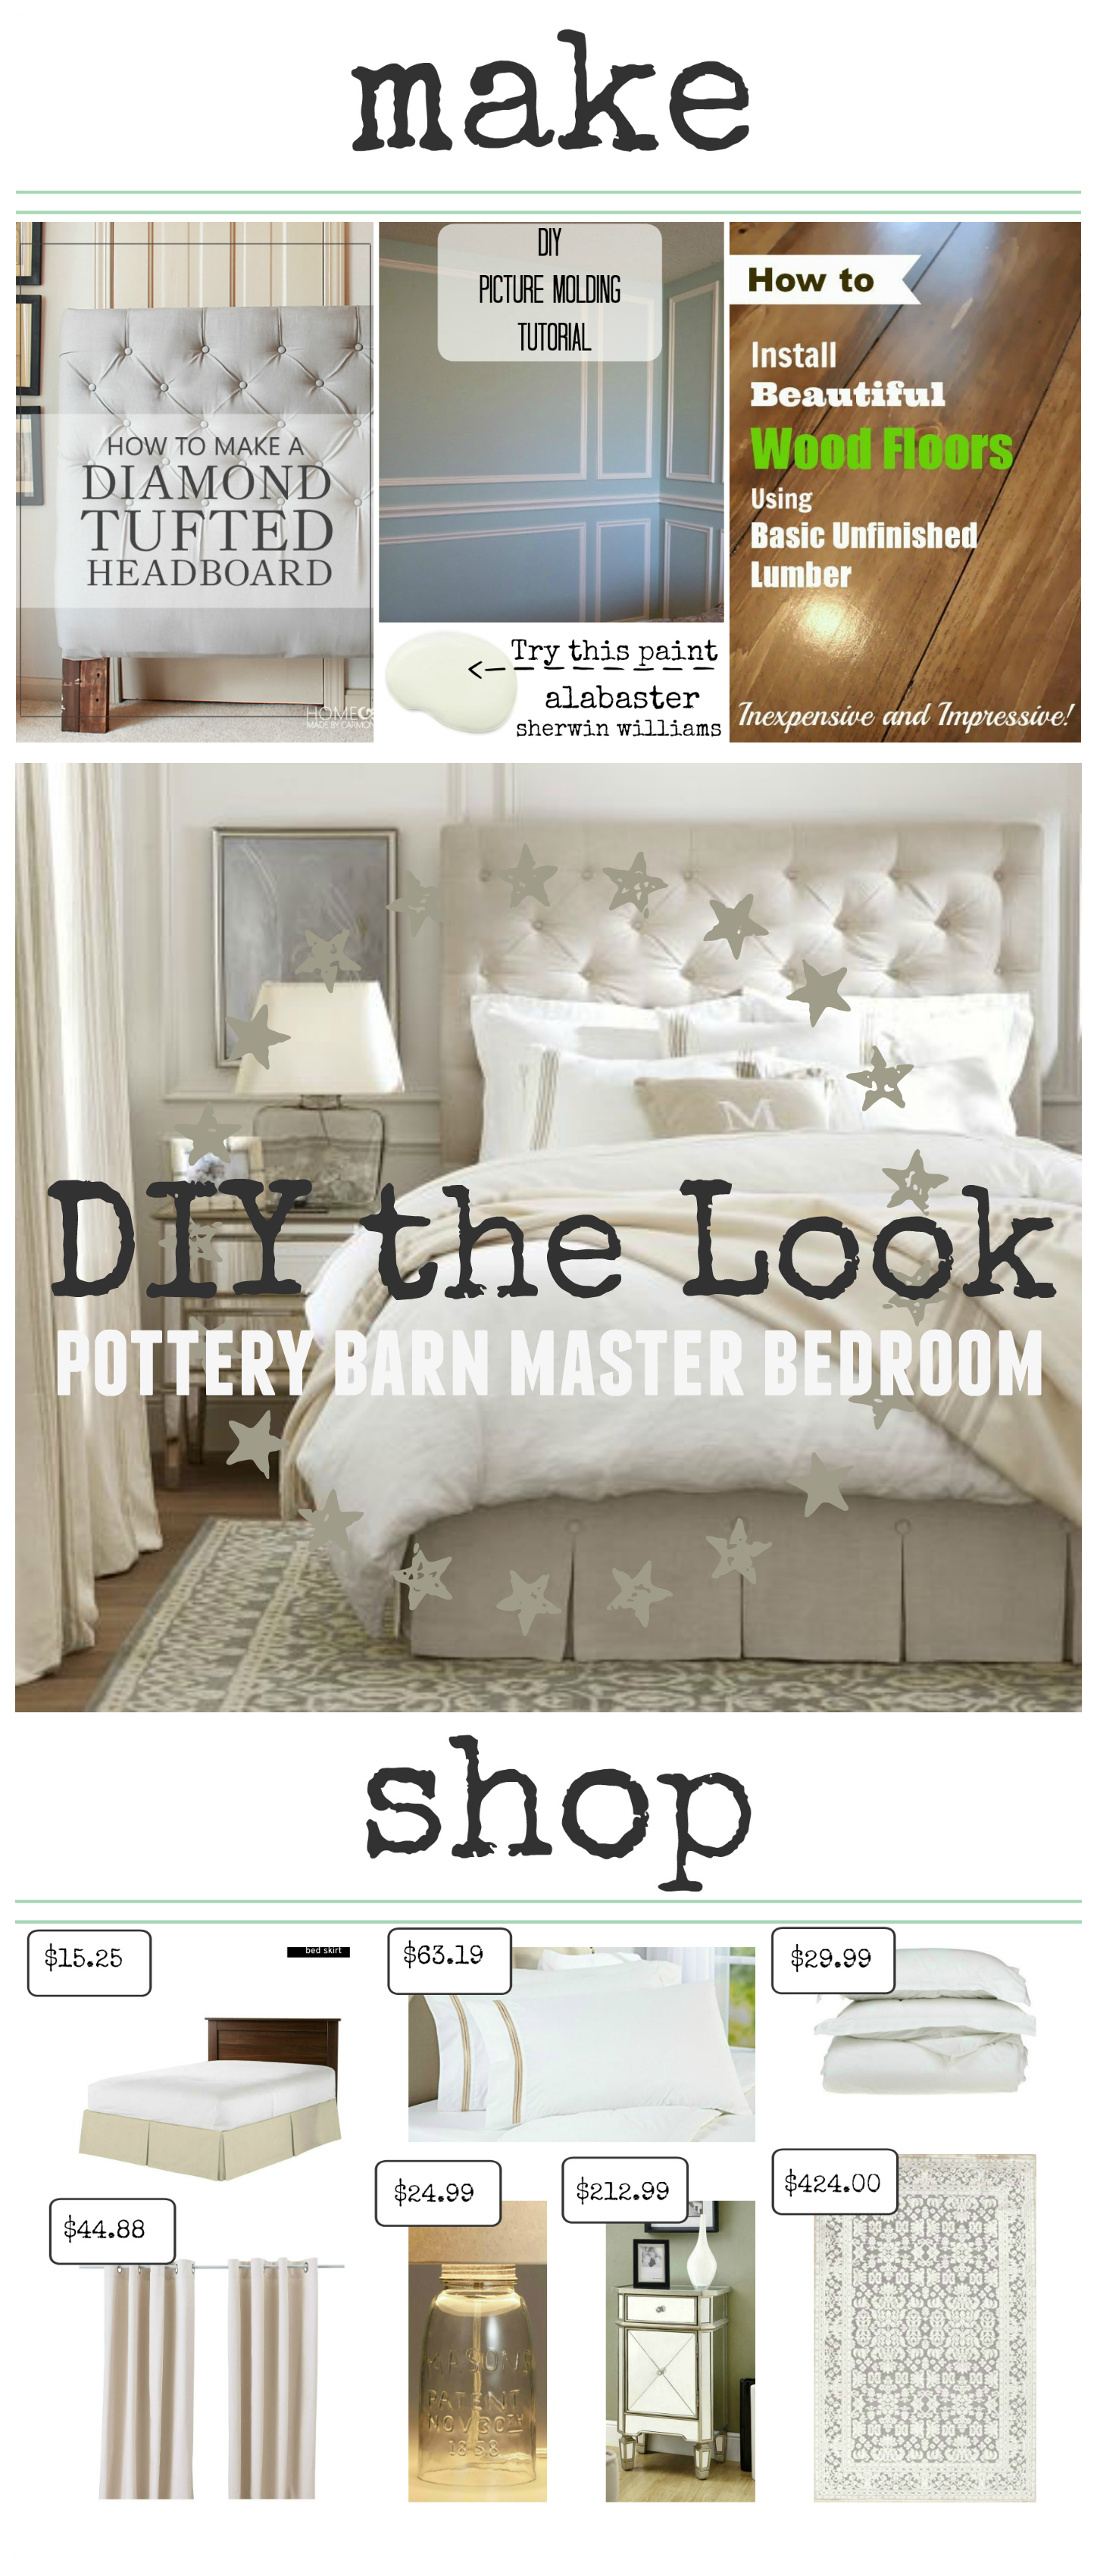 Pottery Barn Master Bedroom. DIY the Look. You don't have to spend a lot of money to have a gorgeous space. I show you how to make and shop to get the look of your favorite spaces! | theweatheredfox.com